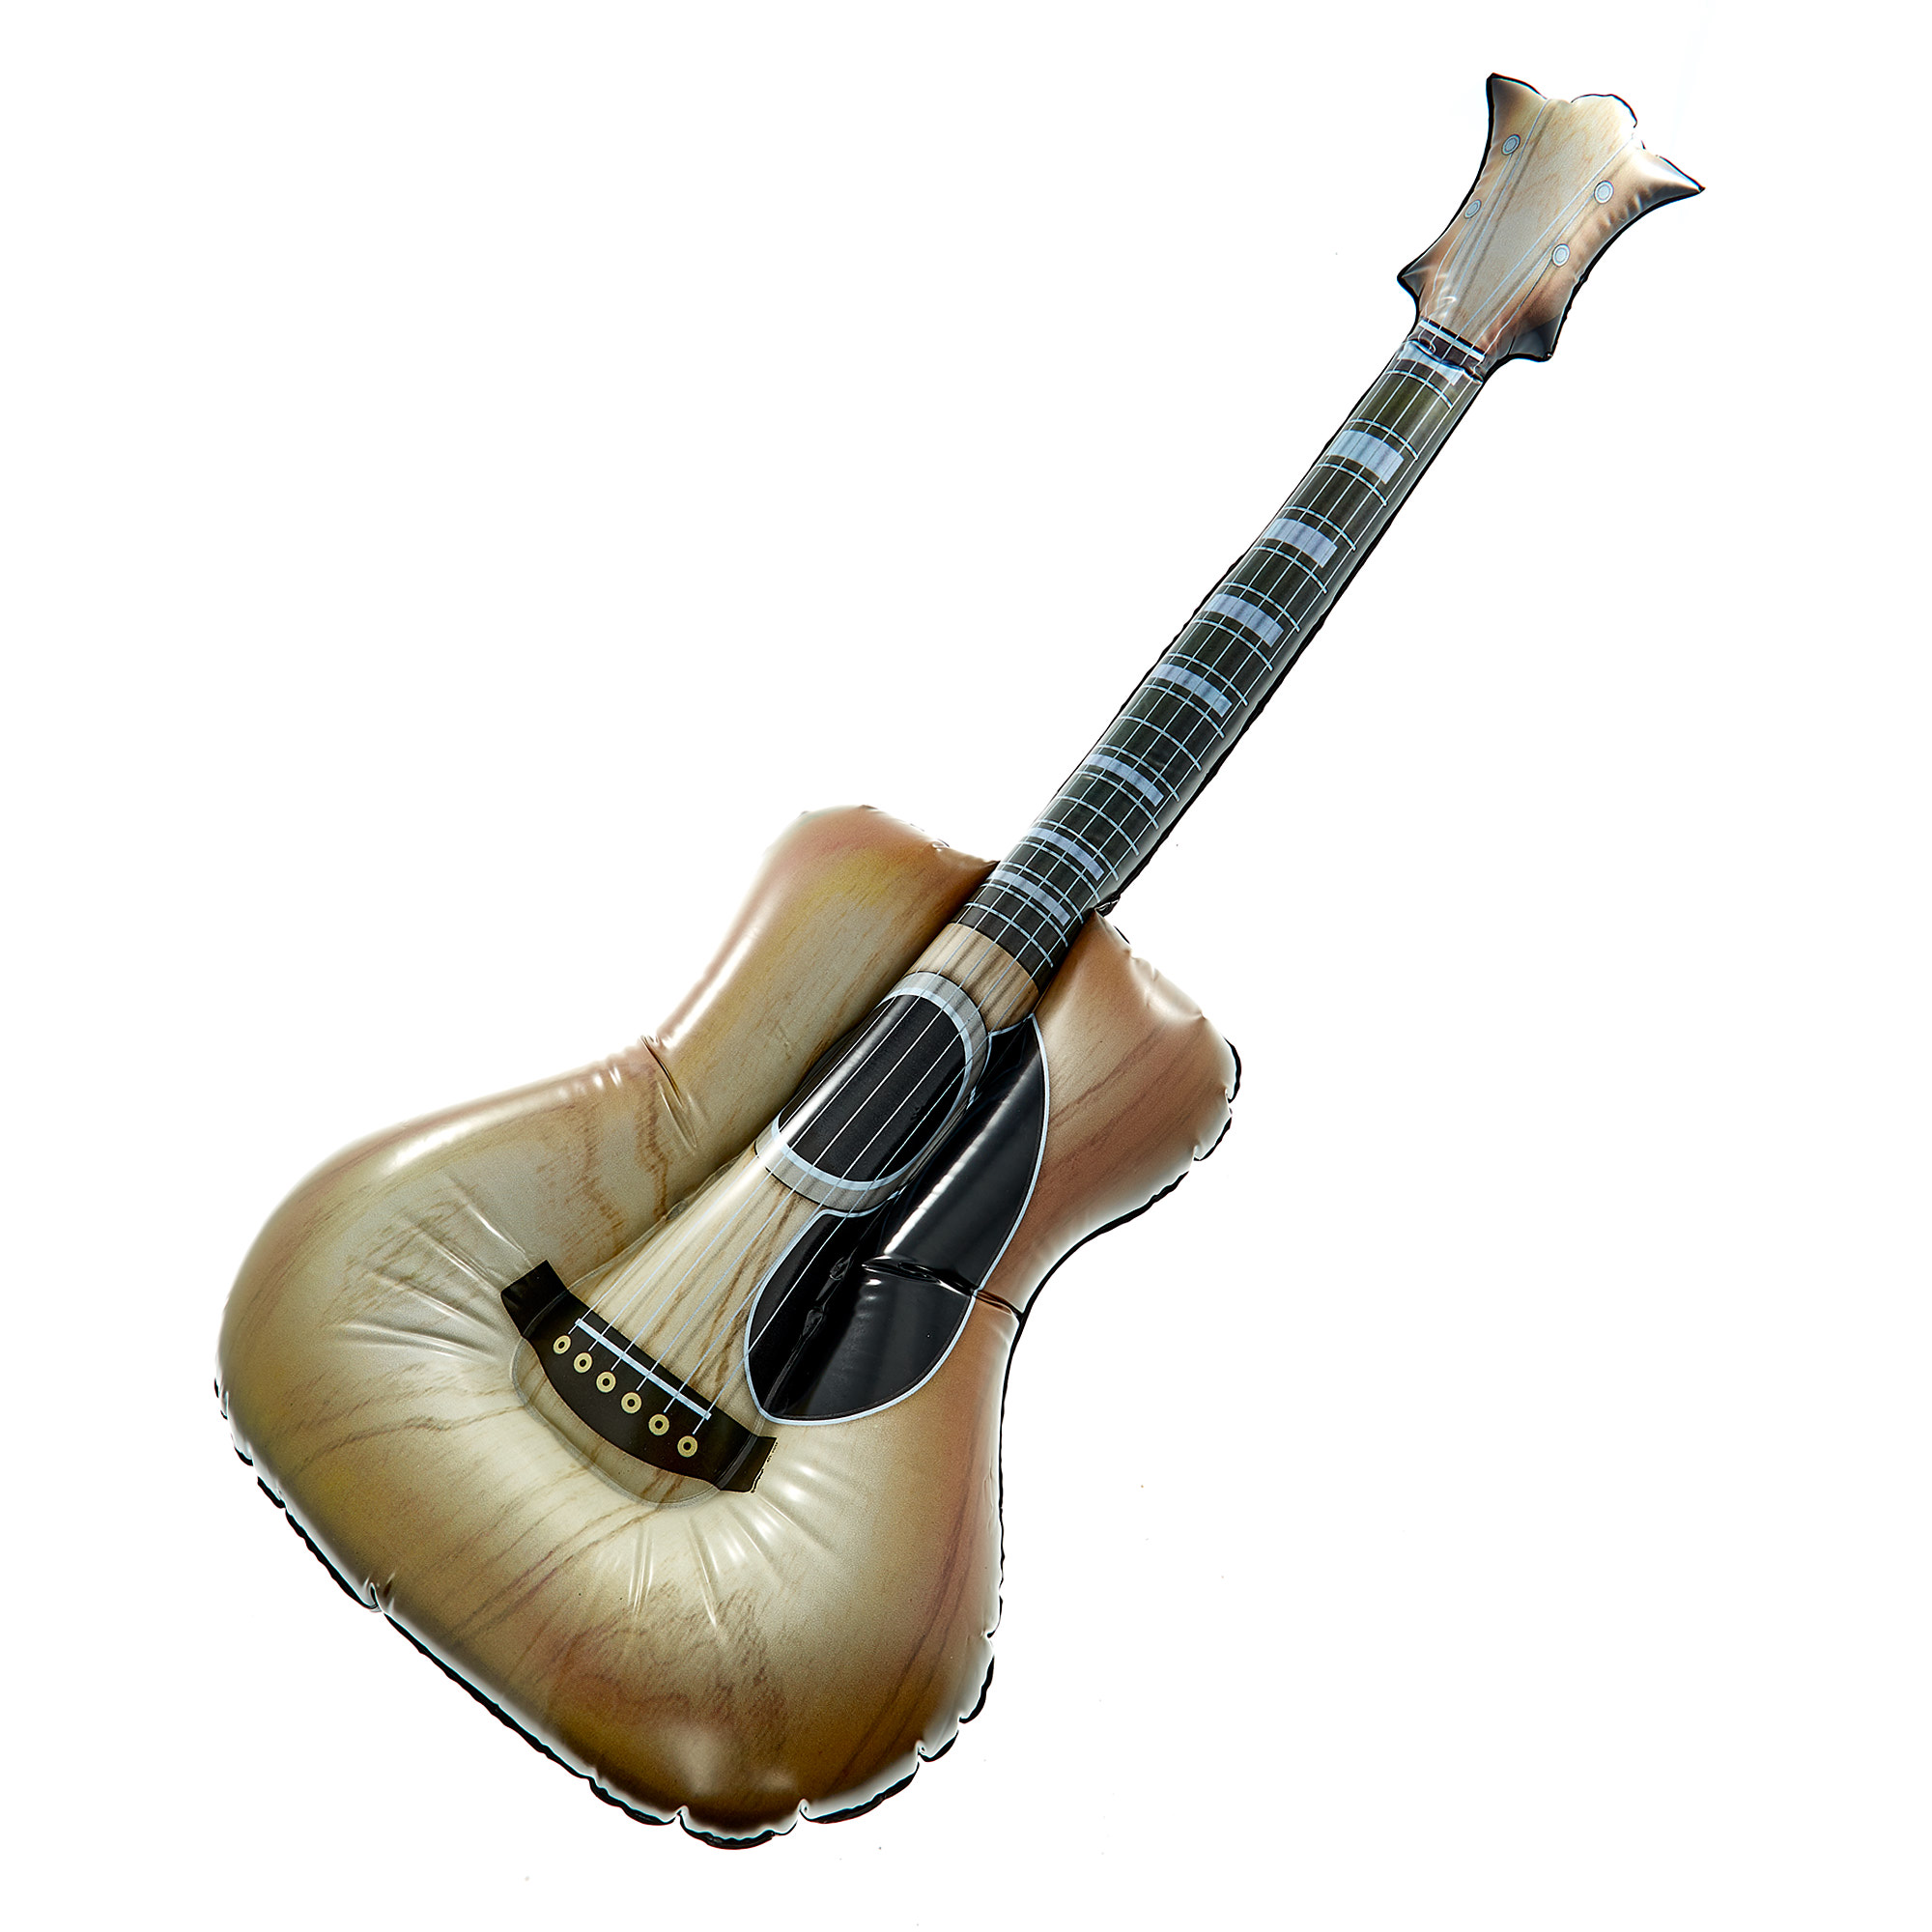 Inflatable Acoustic Guitar - 38 Inches